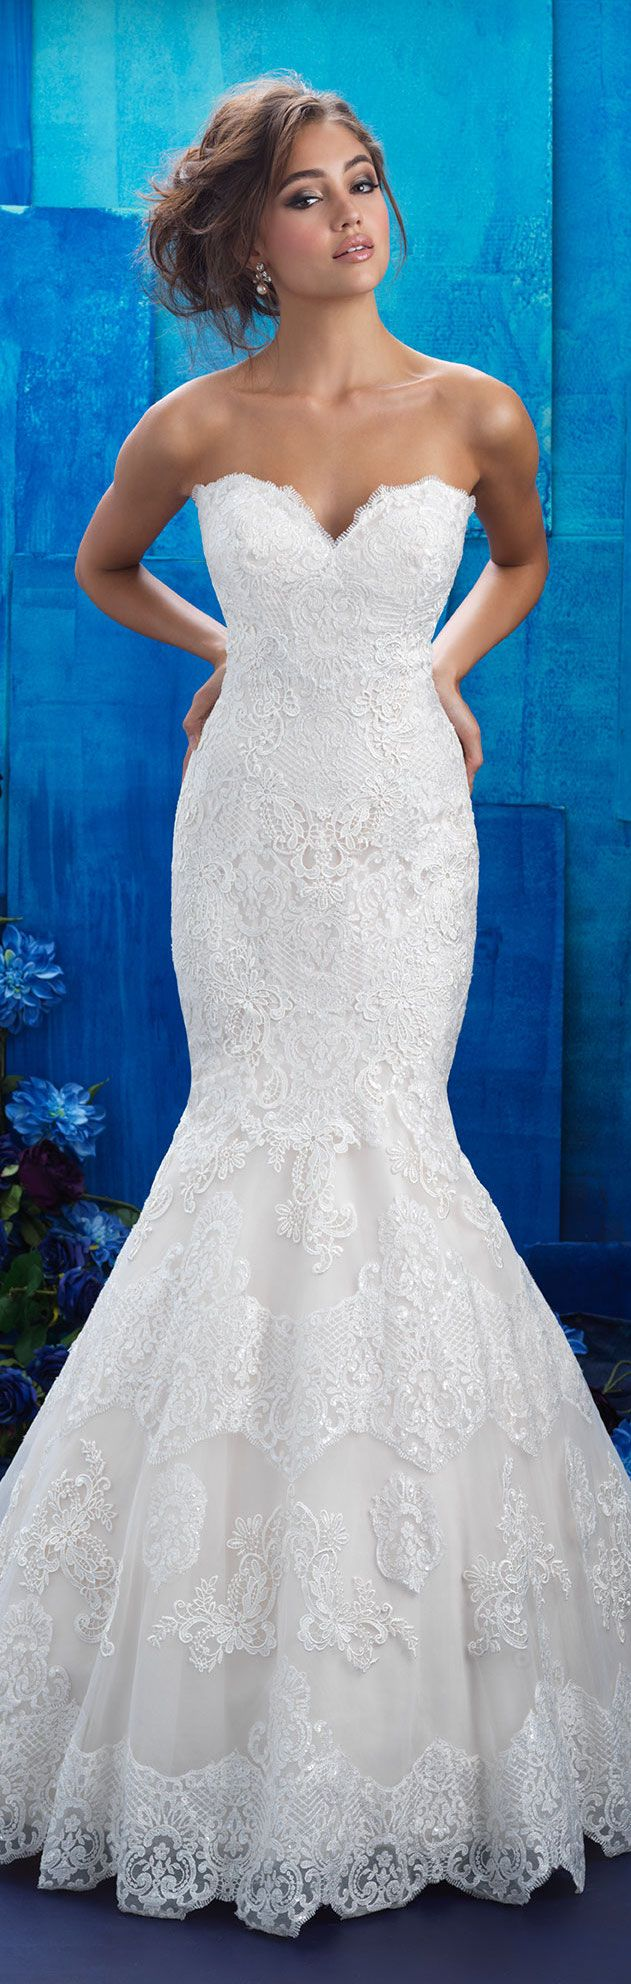 Best 25 Lace Wedding Gowns Ideas On Pinterest